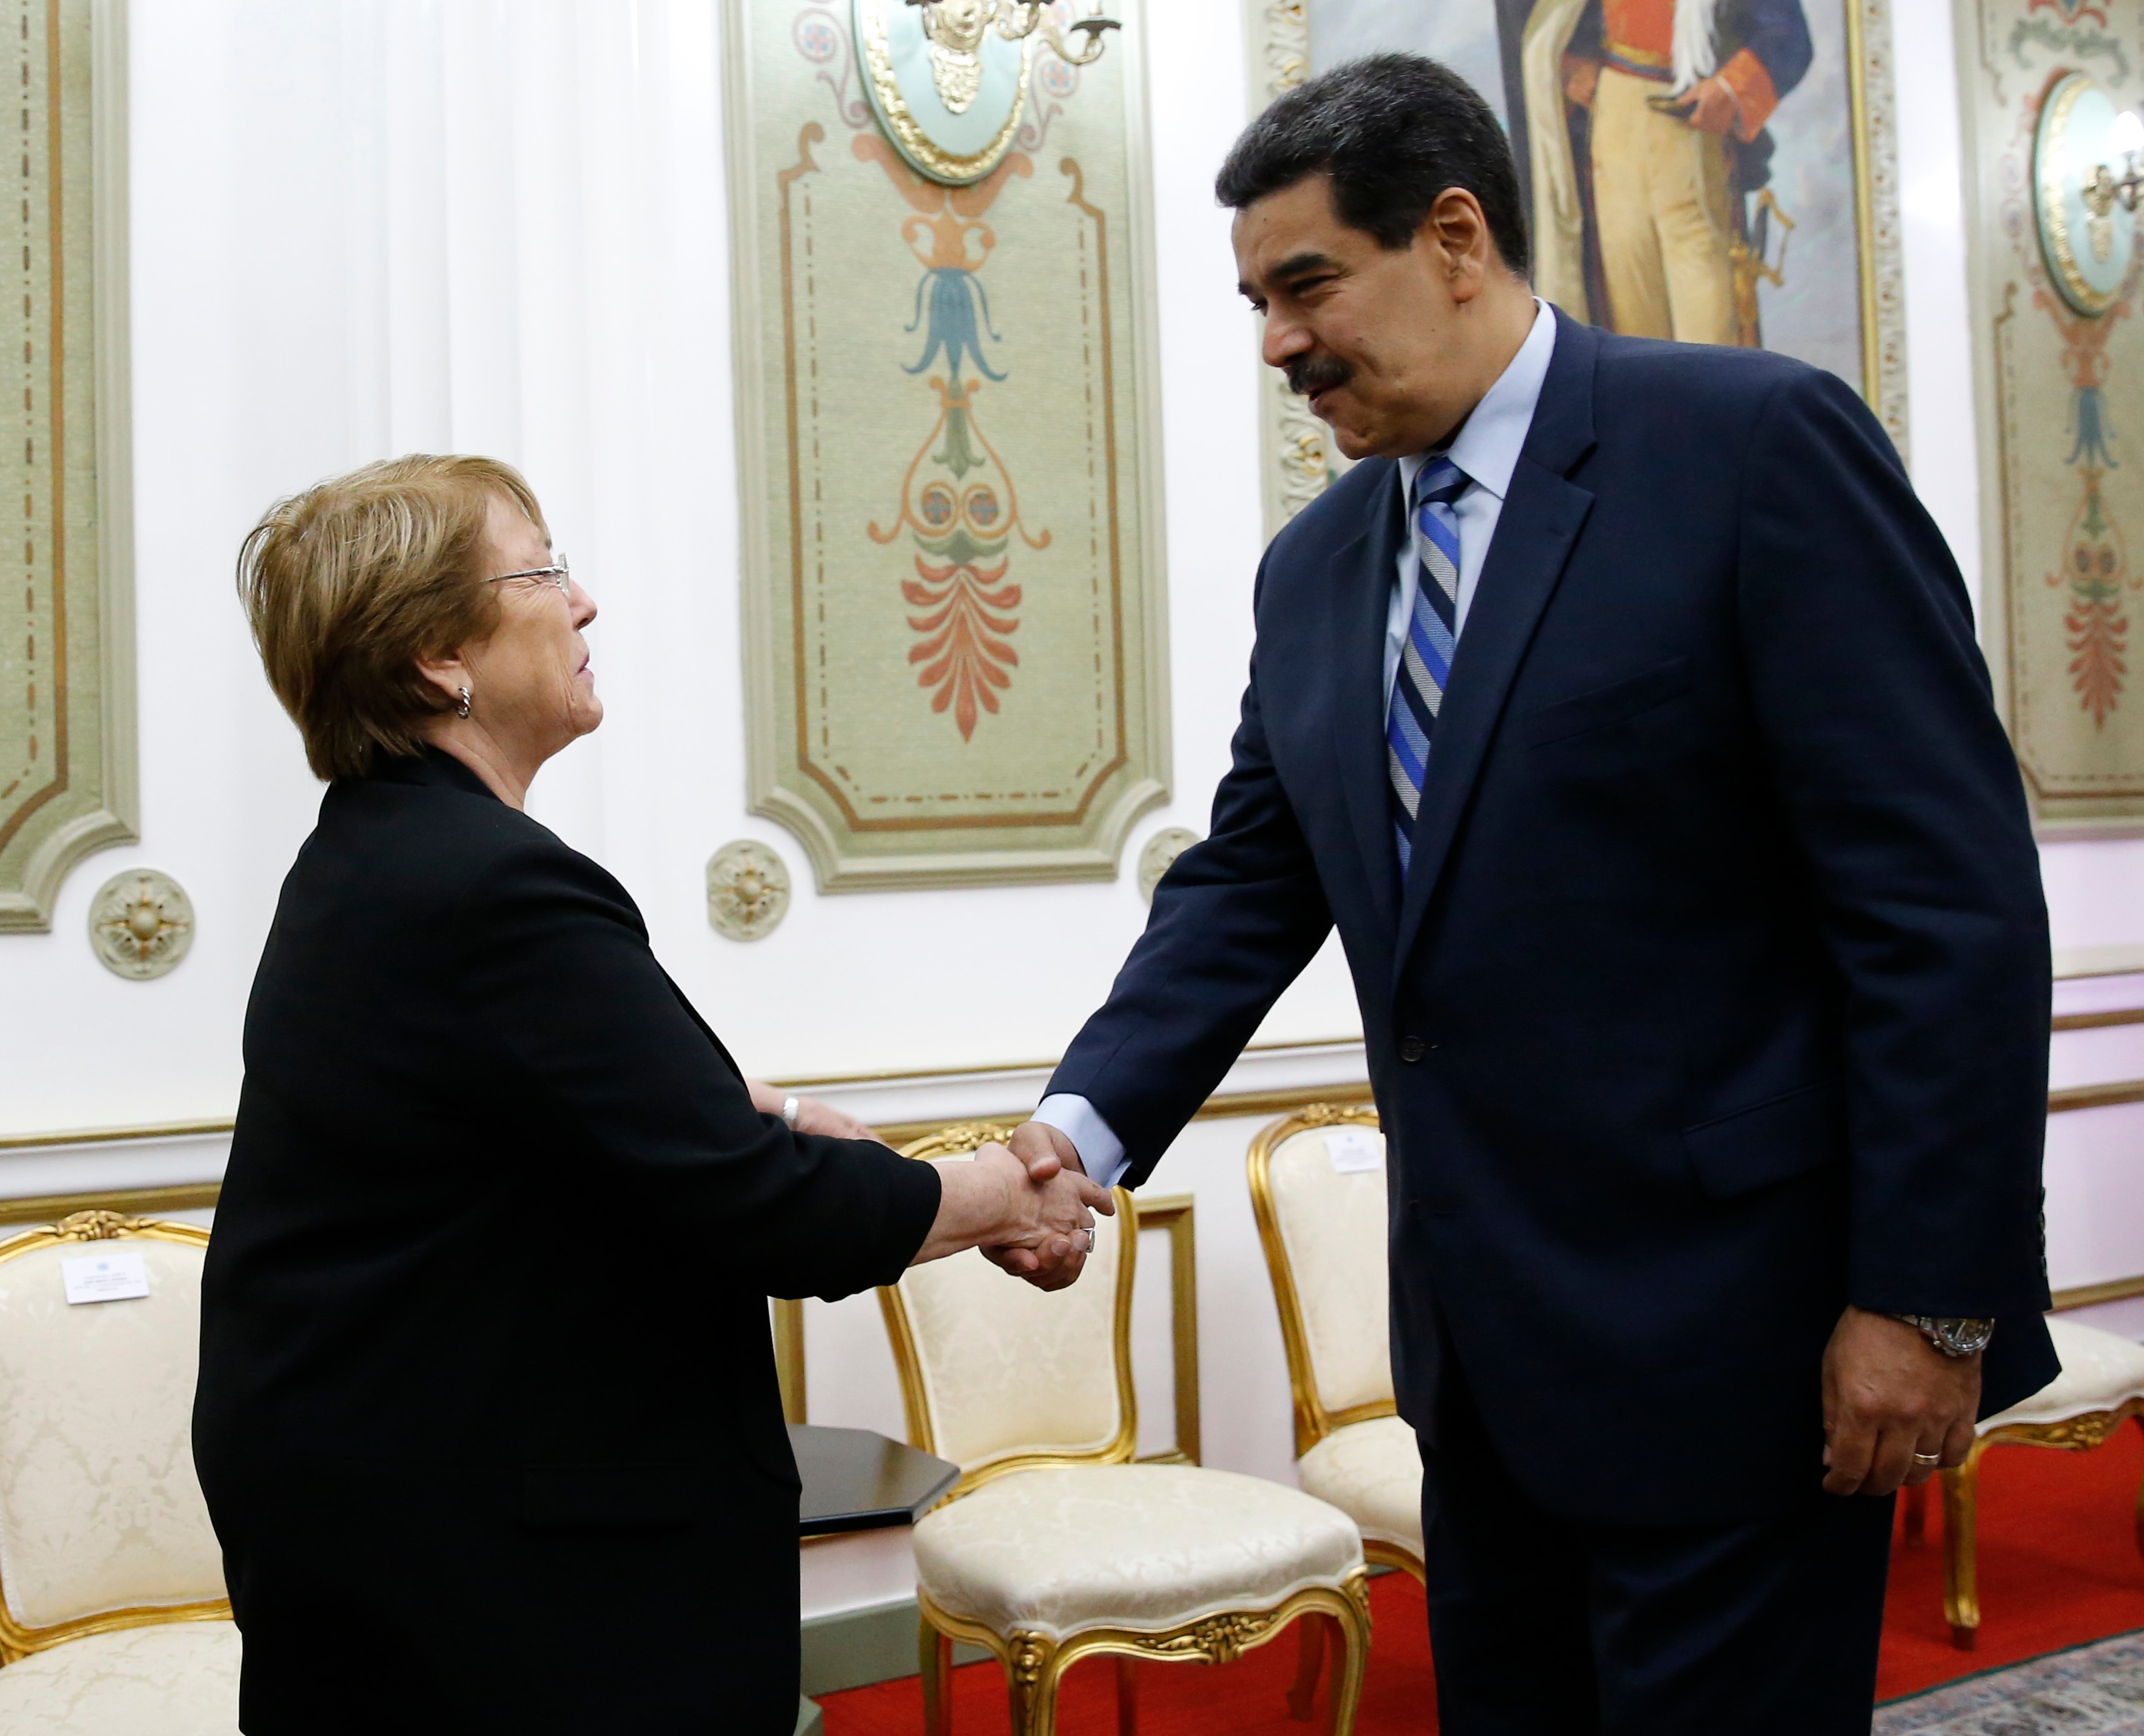 U.N. High Commissioner for Human Rights Michelle Bachelet greeted by Venezuela's President Nicolas Maduro, in Caracas, Venezuela.